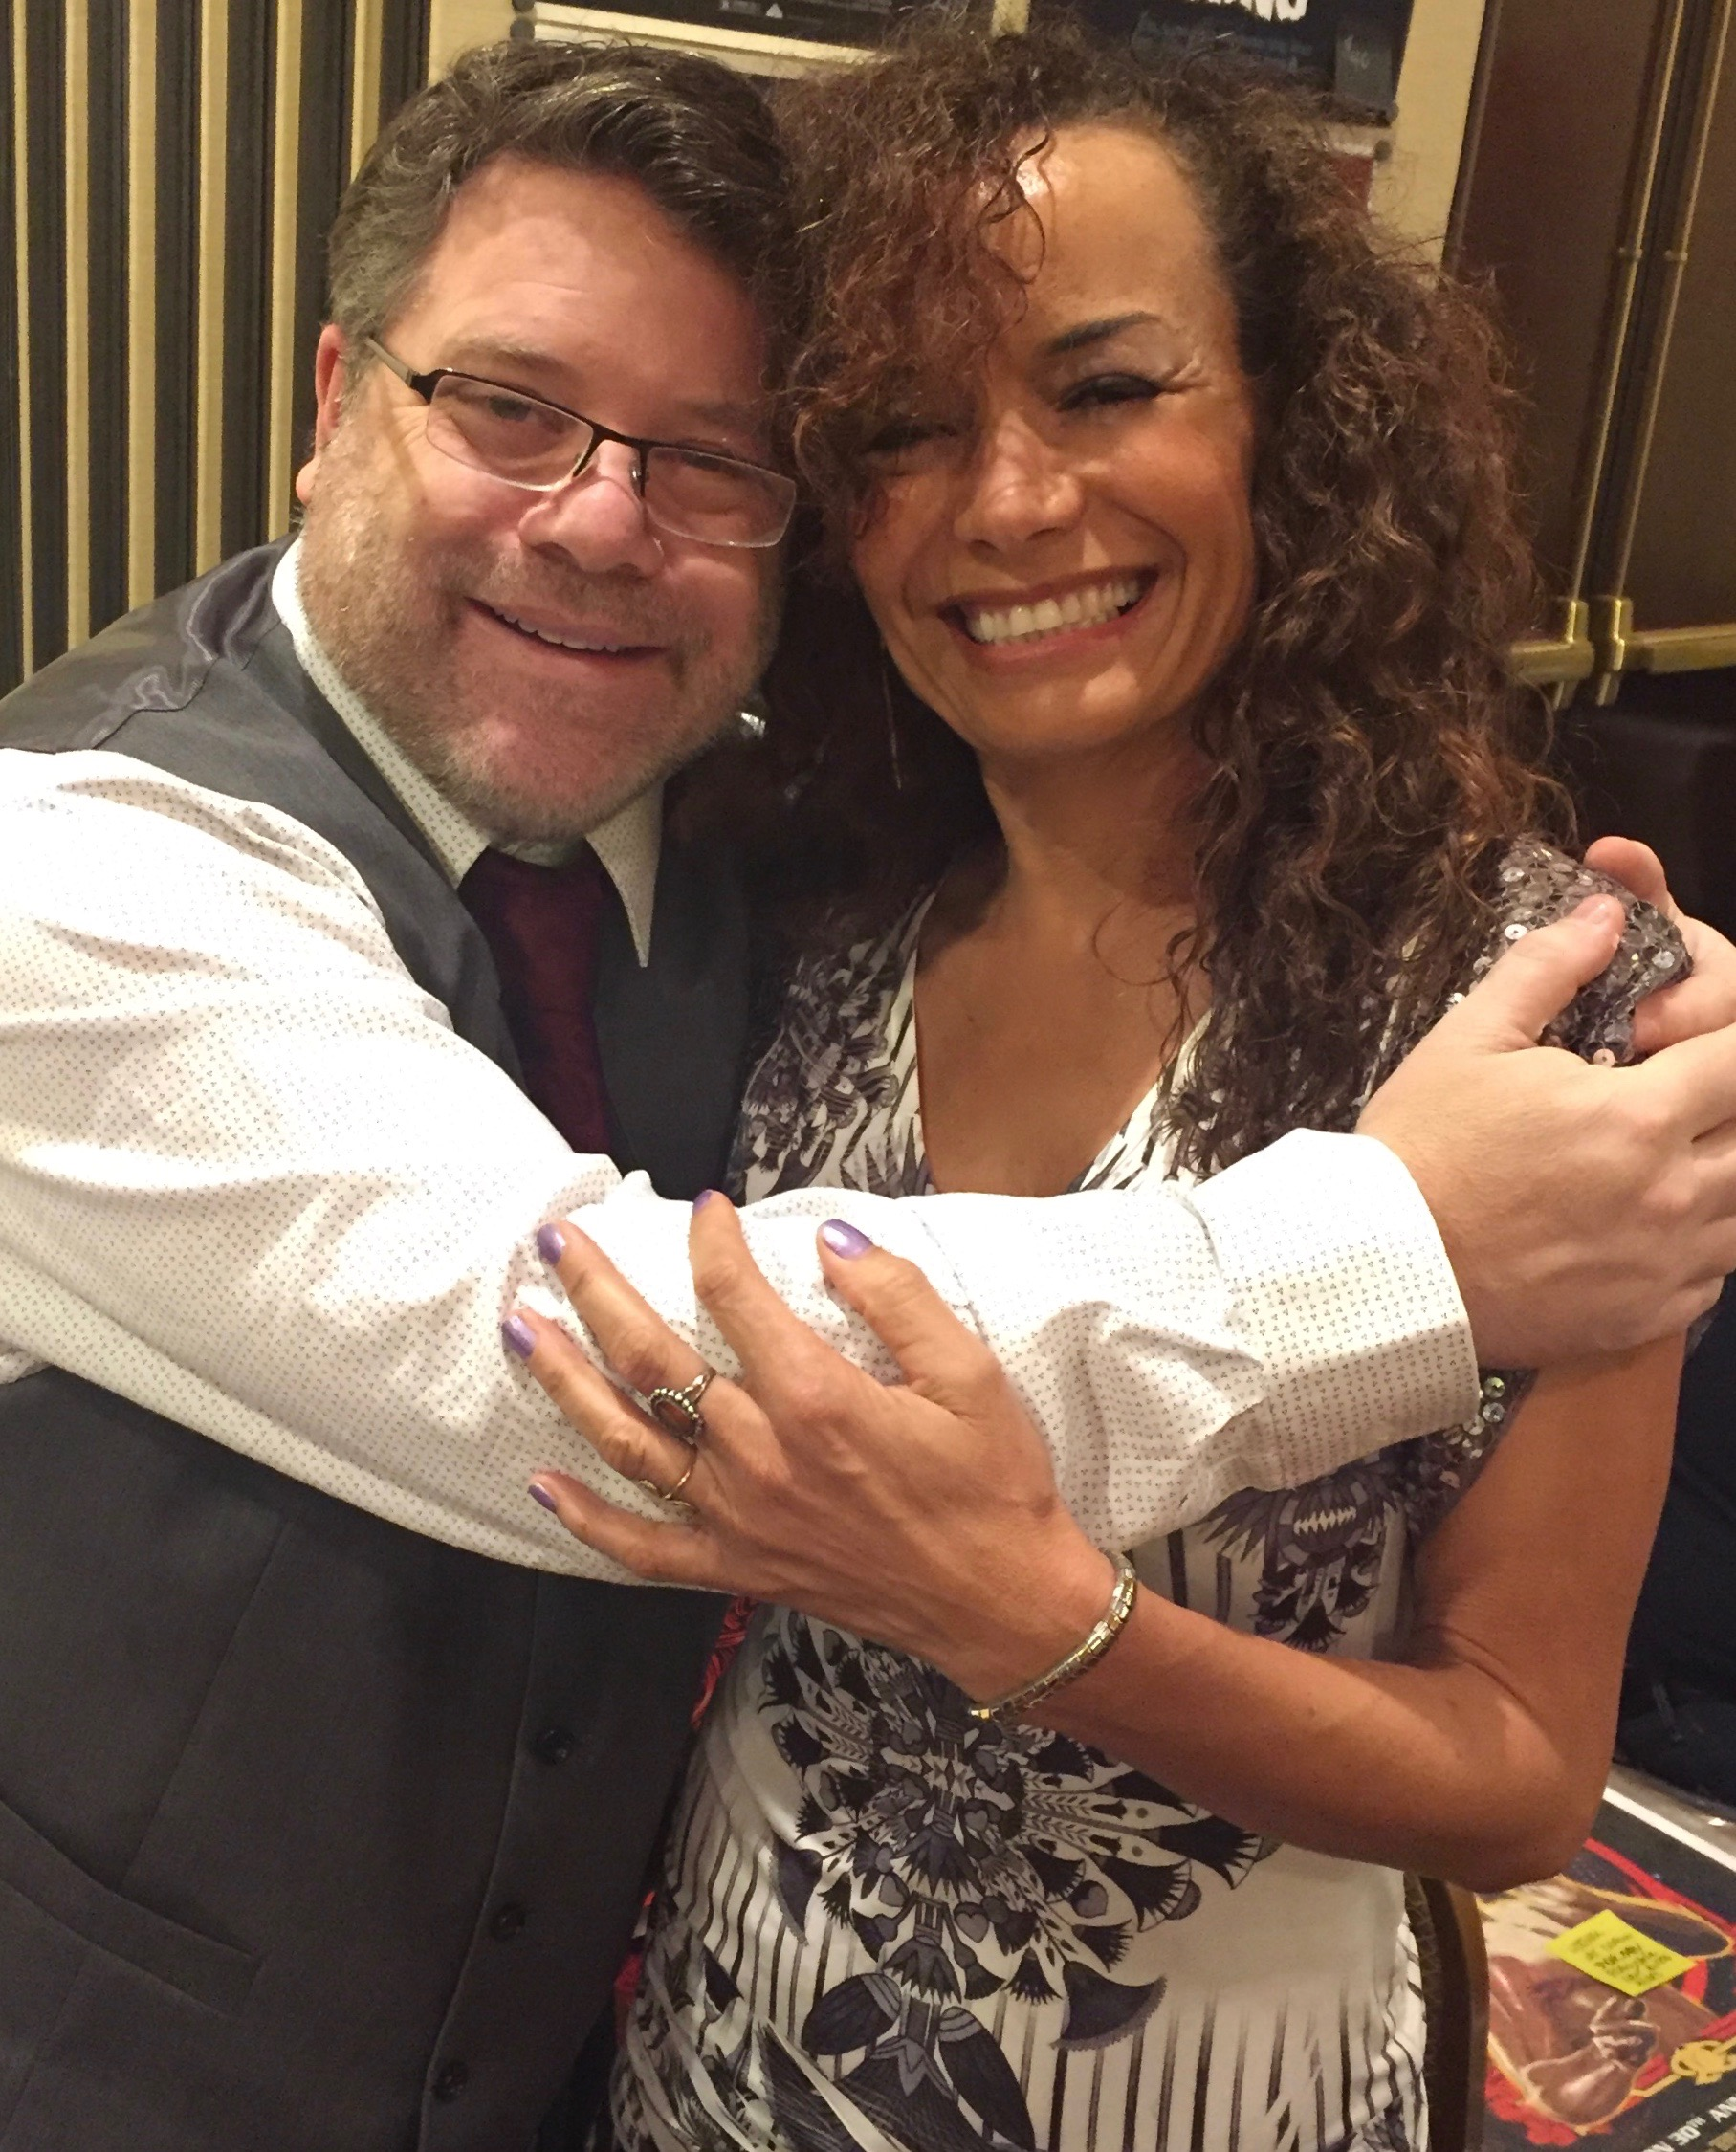 With the sweet Sean Astin